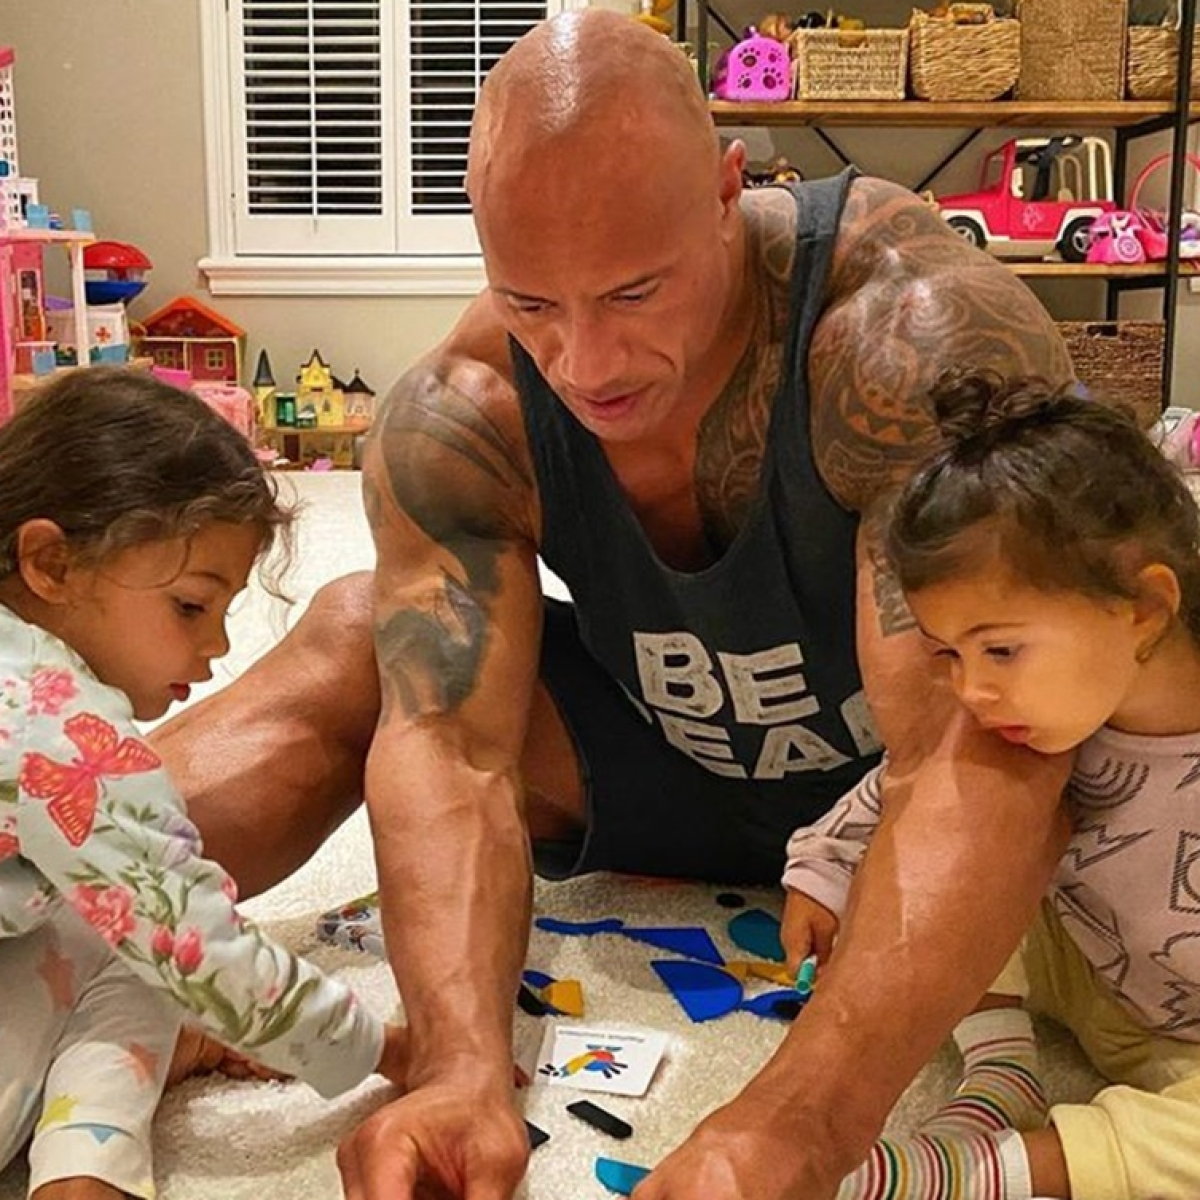 Dwayne 'The Rock' Johnson's entire family tests positive for COVID-19